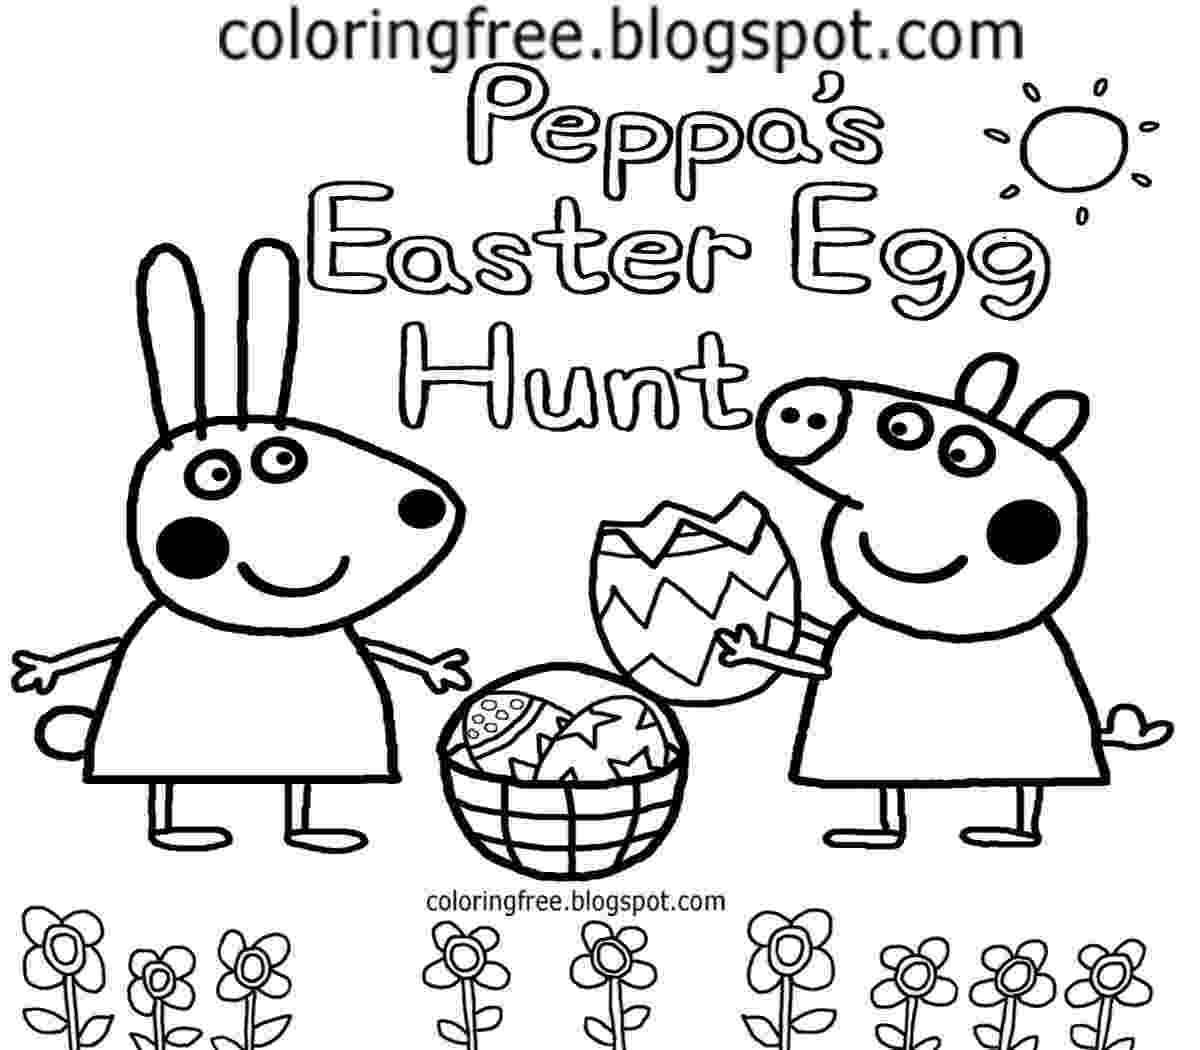 peppa pig colouring pictures to print free coloring pages printable pictures to color kids to print peppa colouring pictures pig